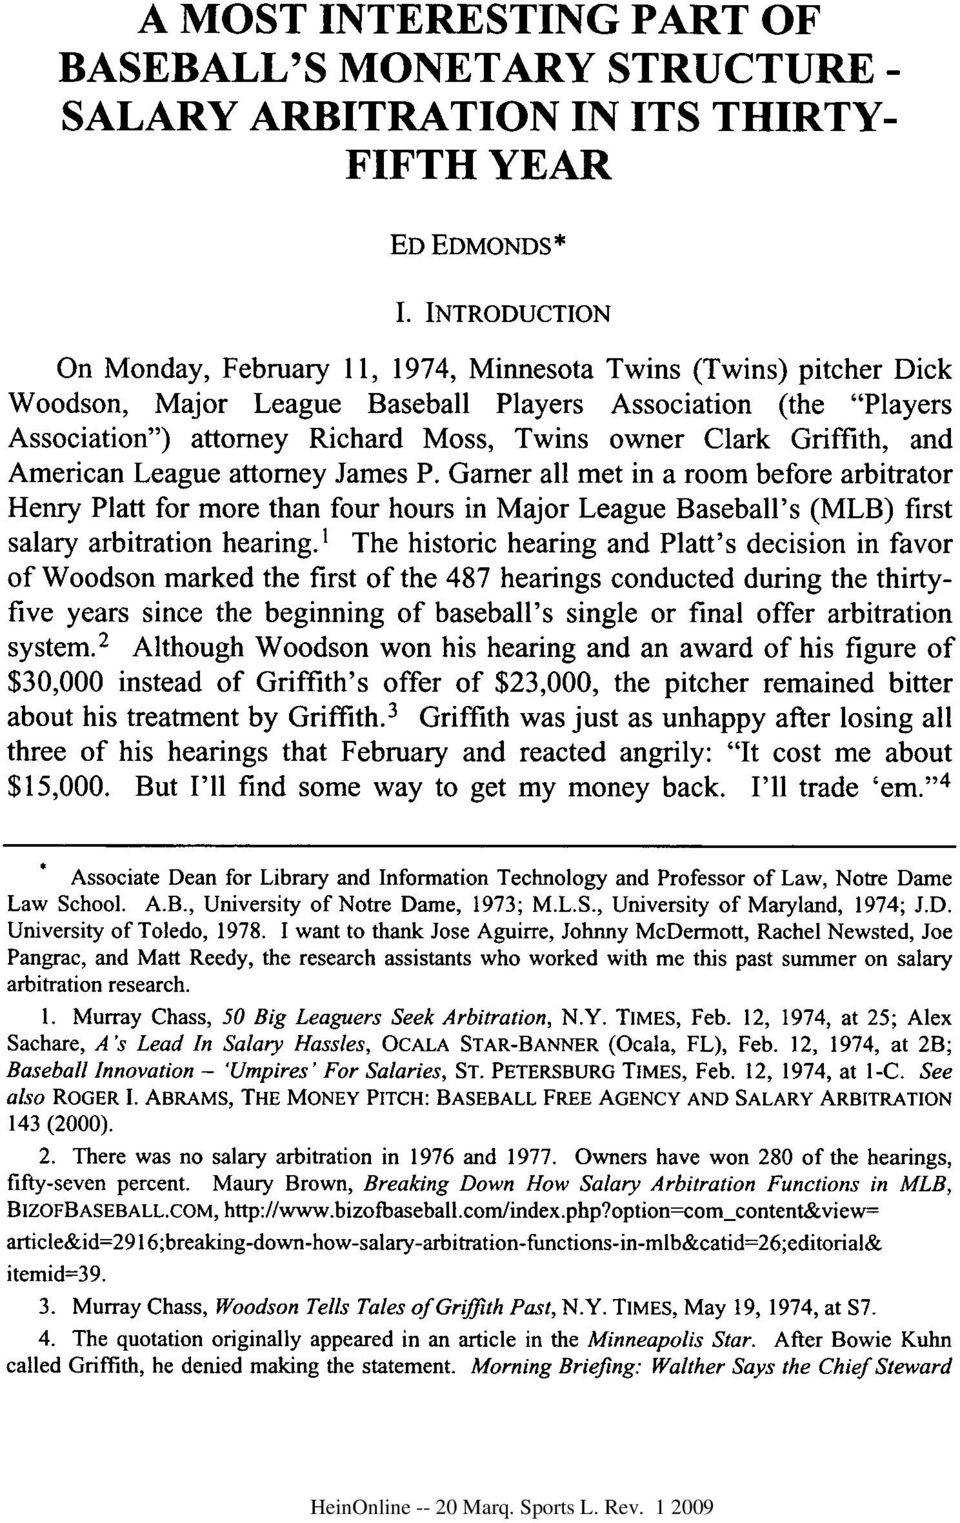 Griffith, and American League attorney James P. Garner all met in a room before arbitrator Henry Platt for more than four hours in Major League Baseball's (MLB) first salary arbitration hearing.